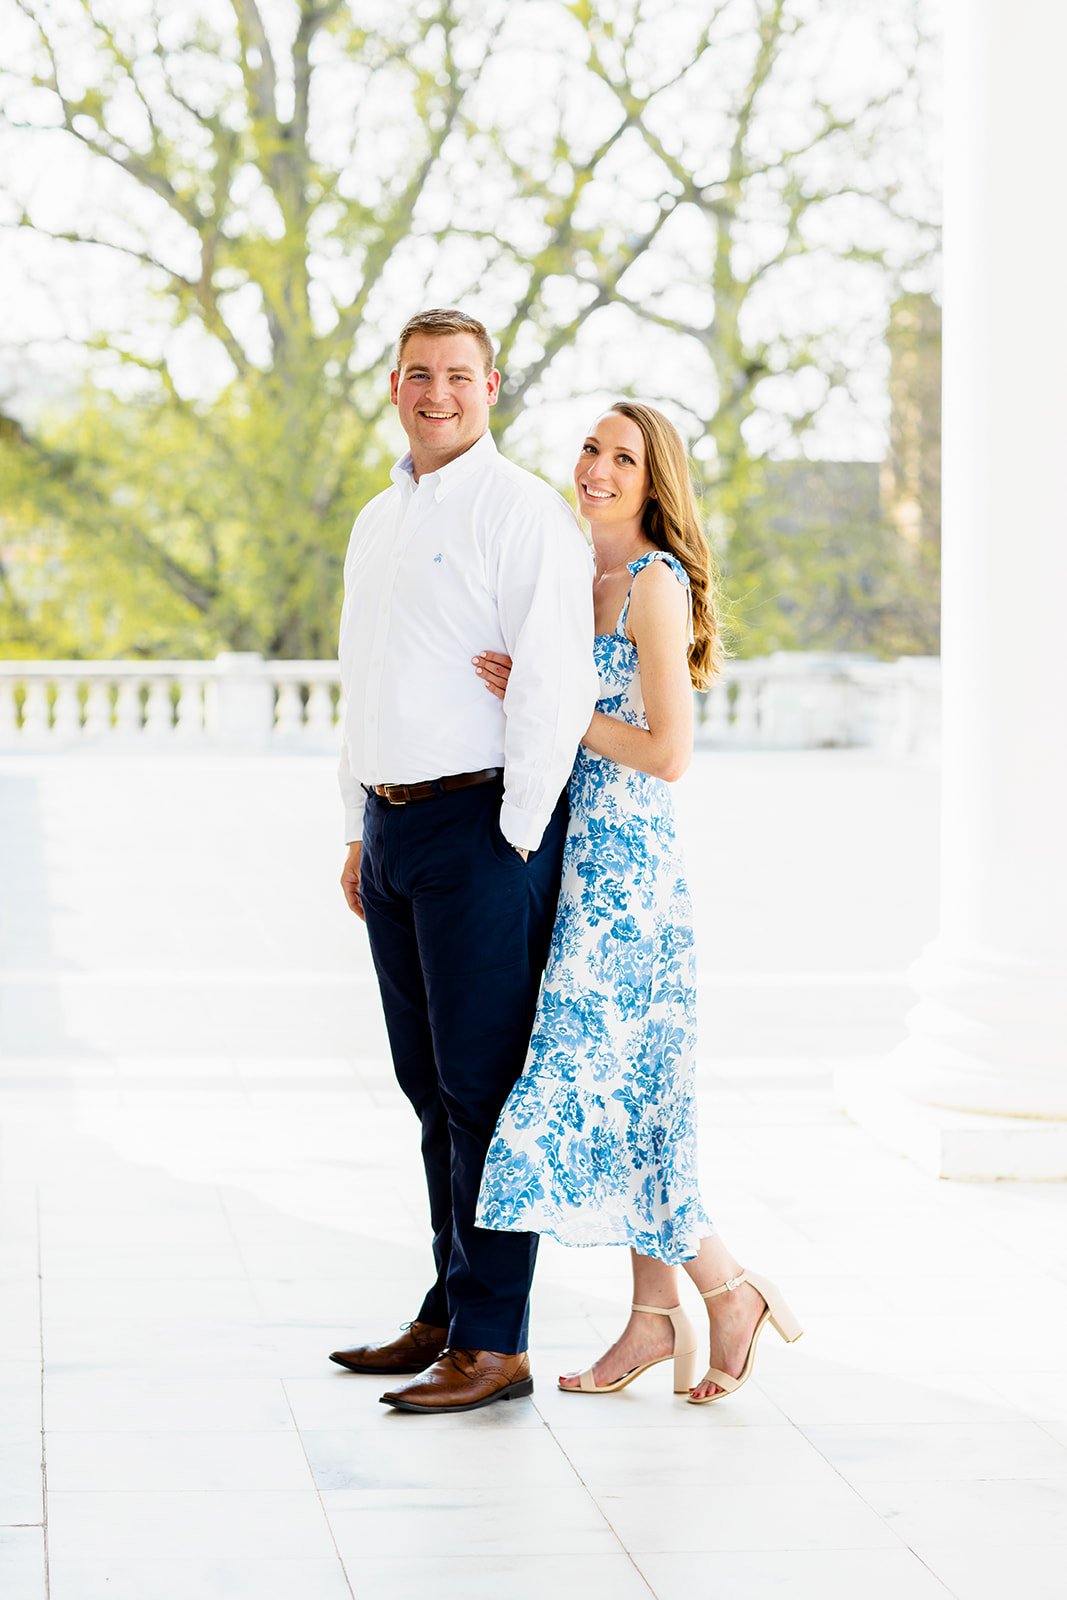 Rebecca  Johns University of Virginia Engagement Photos - Image Property of www.j-dphoto.com